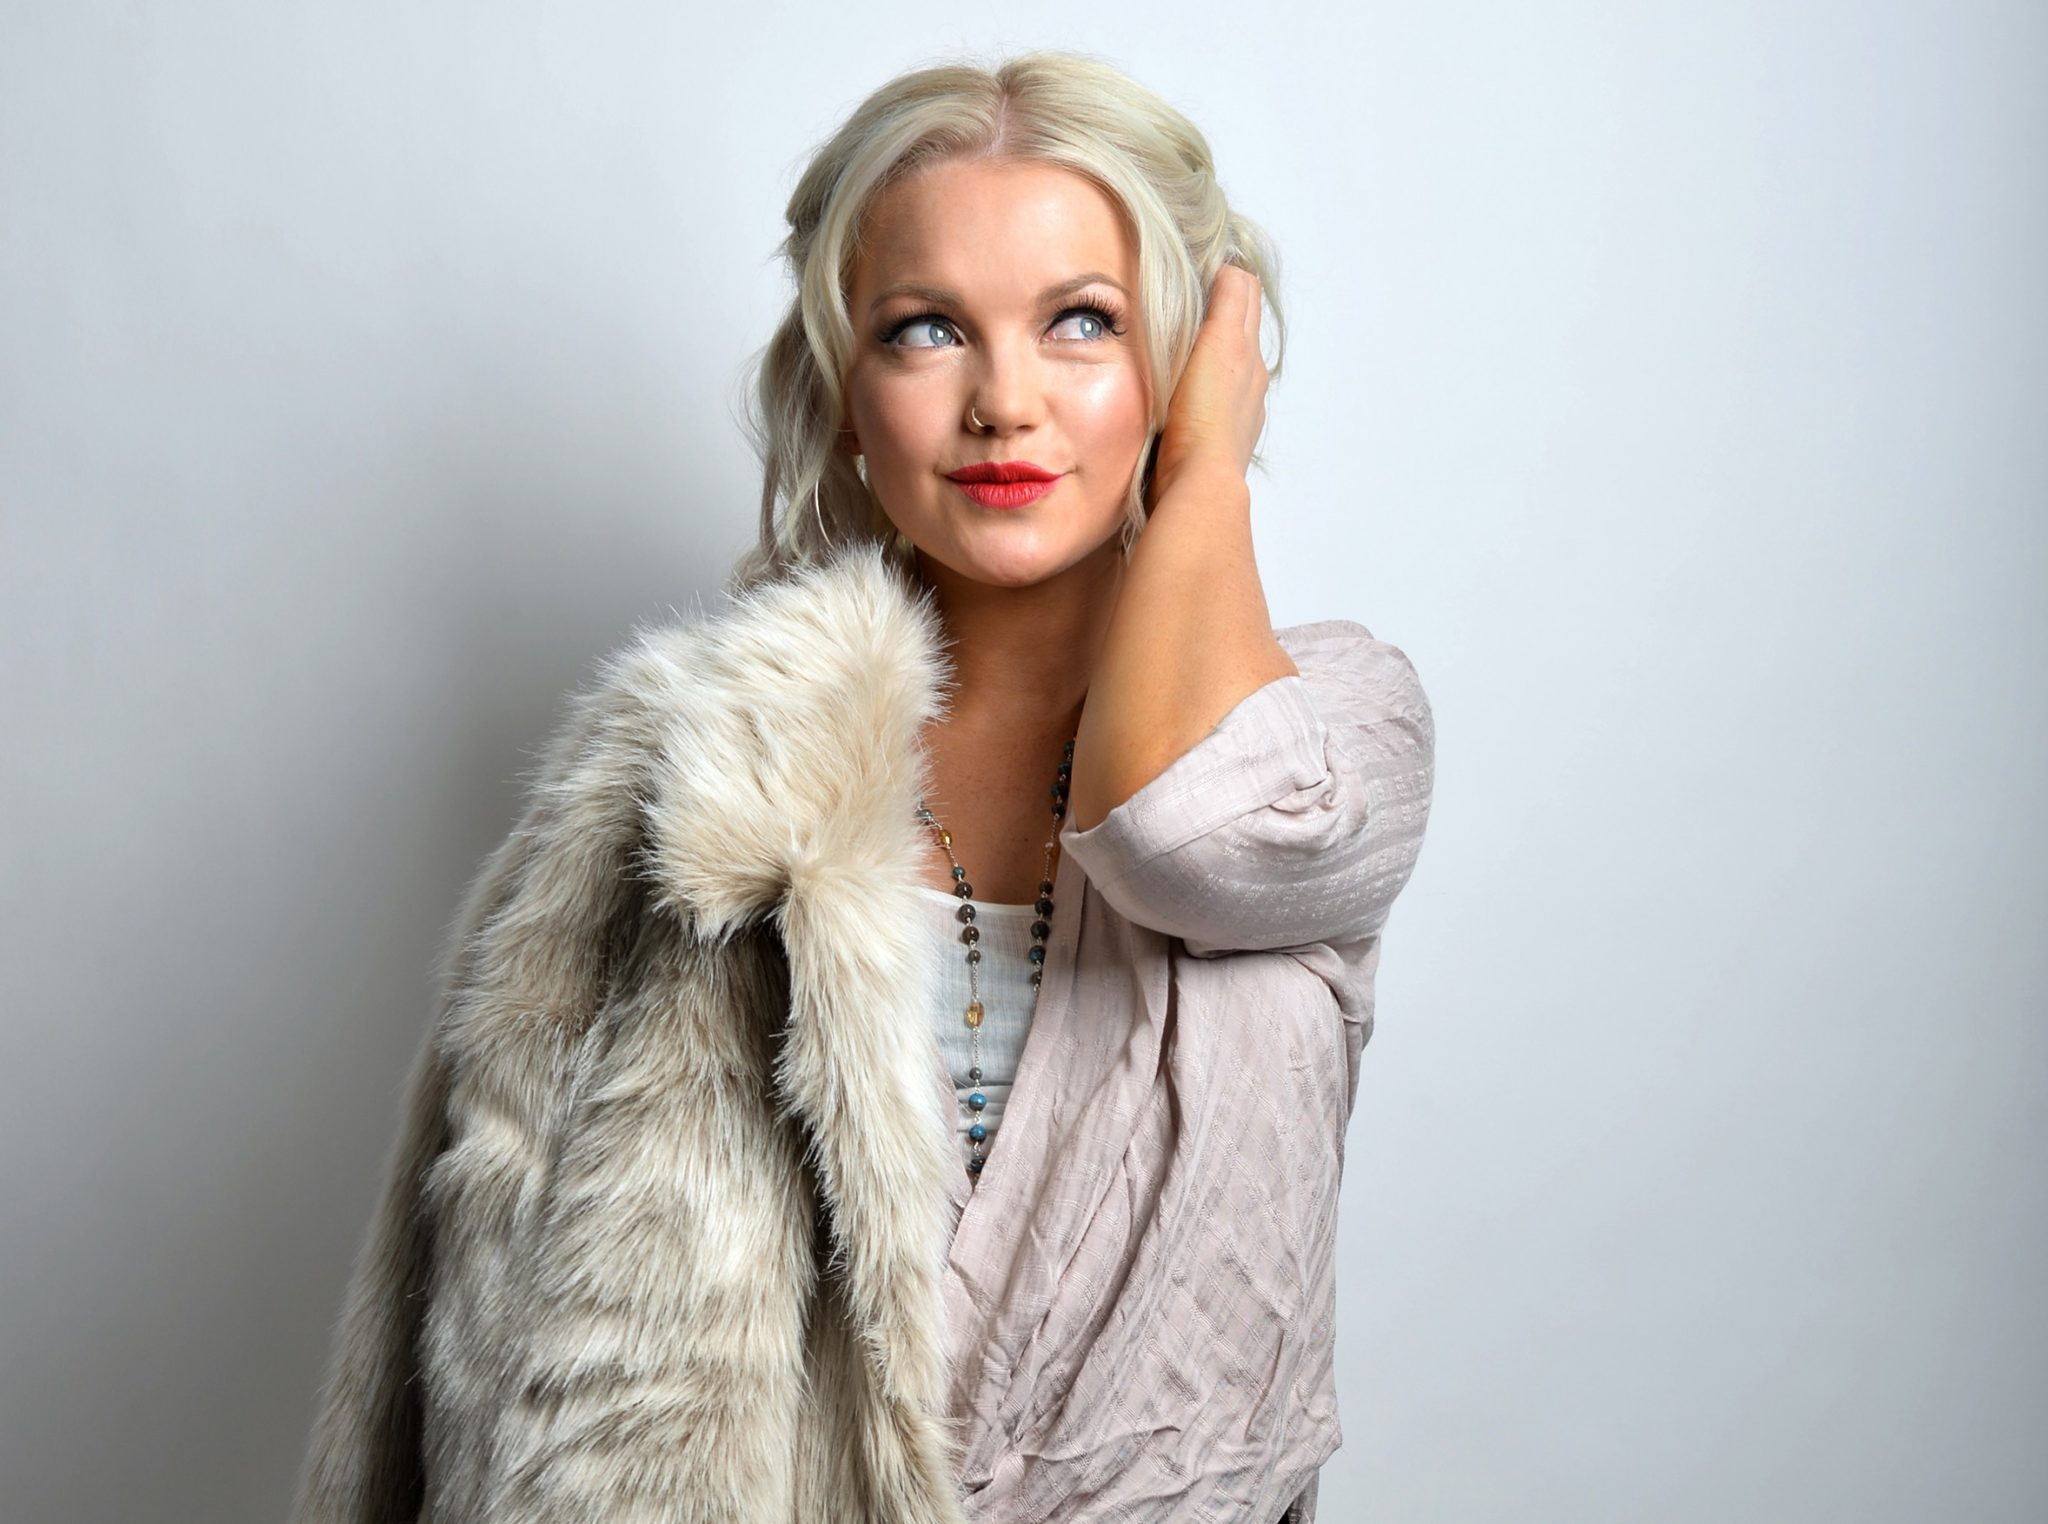 hannah spearritt boyfriendhannah spearritt imdb, hannah spearritt tumblr, hannah spearritt interview, hannah spearritt instagram, hannah spearritt wiki, hannah spearritt, hannah spearritt and andrew lee potts, hannah spearritt twitter, hannah spearritt and paul cattermole, hannah spearritt 2015, hannah spearritt facebook, hannah spearritt s club 7, hannah spearritt feet, hannah spearritt hot, hannah spearritt casualty, hannah spearritt boyfriend, hannah spearritt net worth, hannah spearritt bikini, hannah spearritt and paul